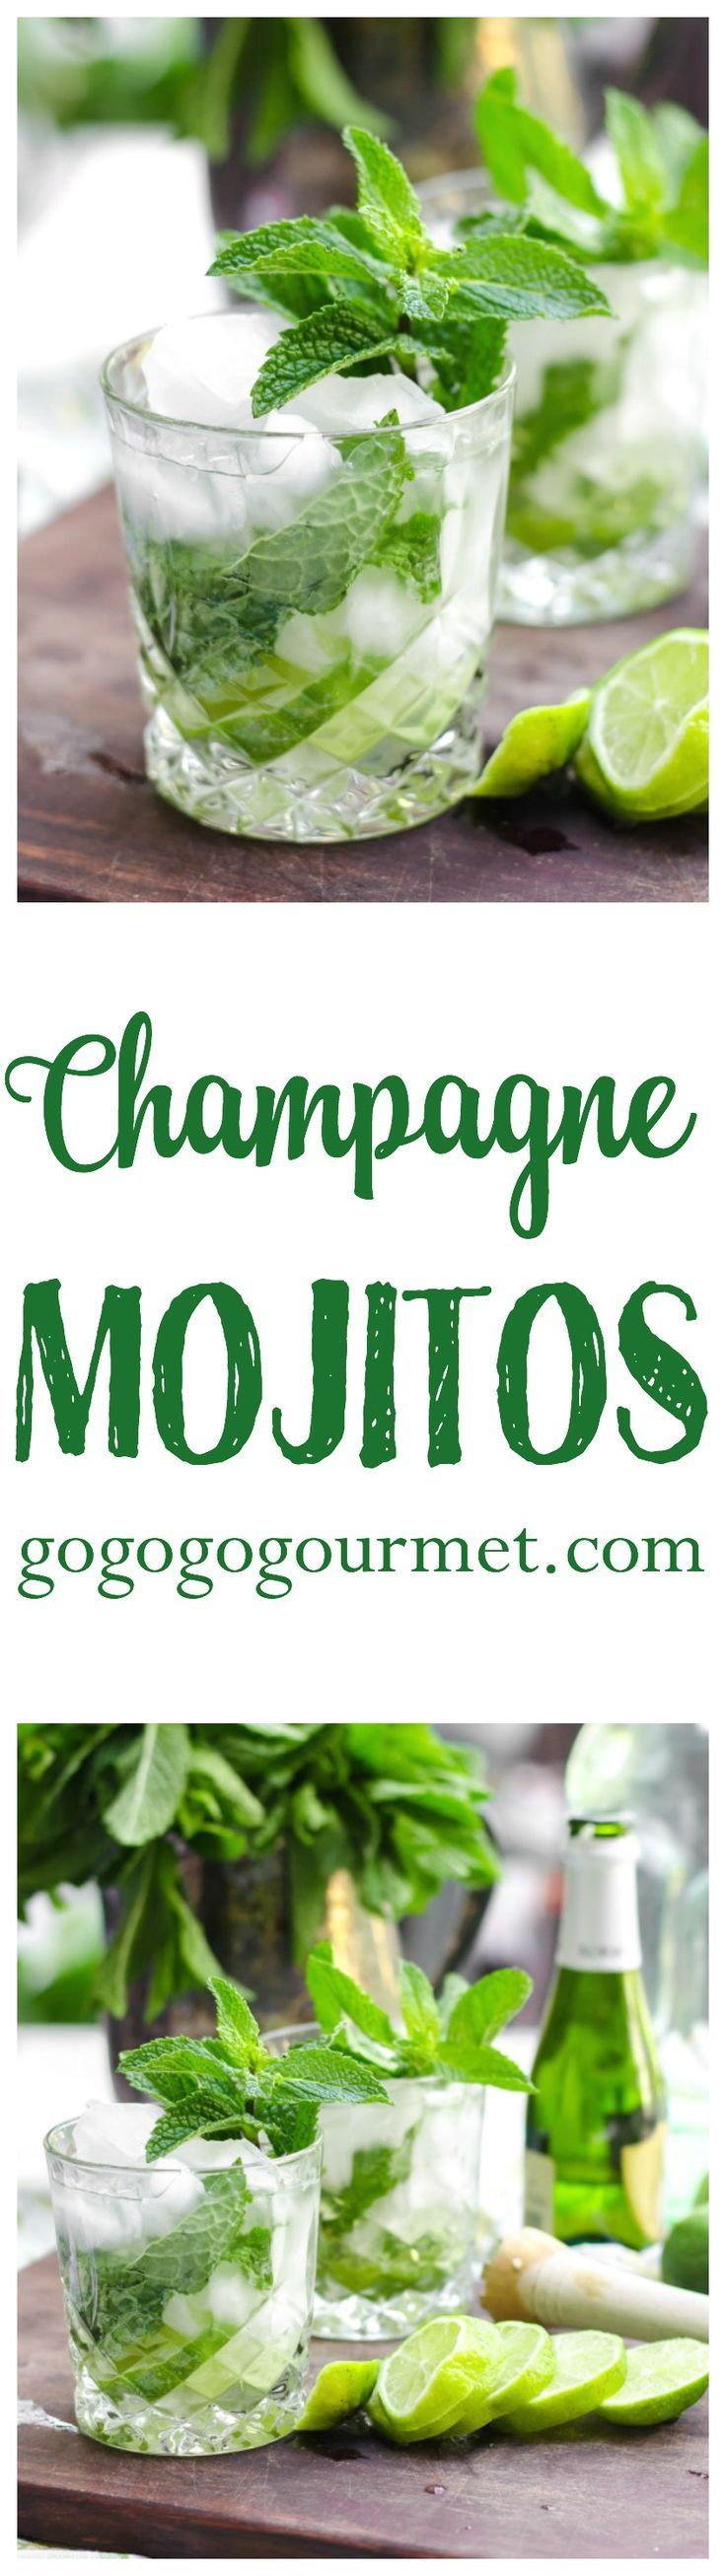 Add an extra kick and hint of fancy to this summertime favorite! Champagne Mojitos | Go Go Go Gourmet @gogogogourmet